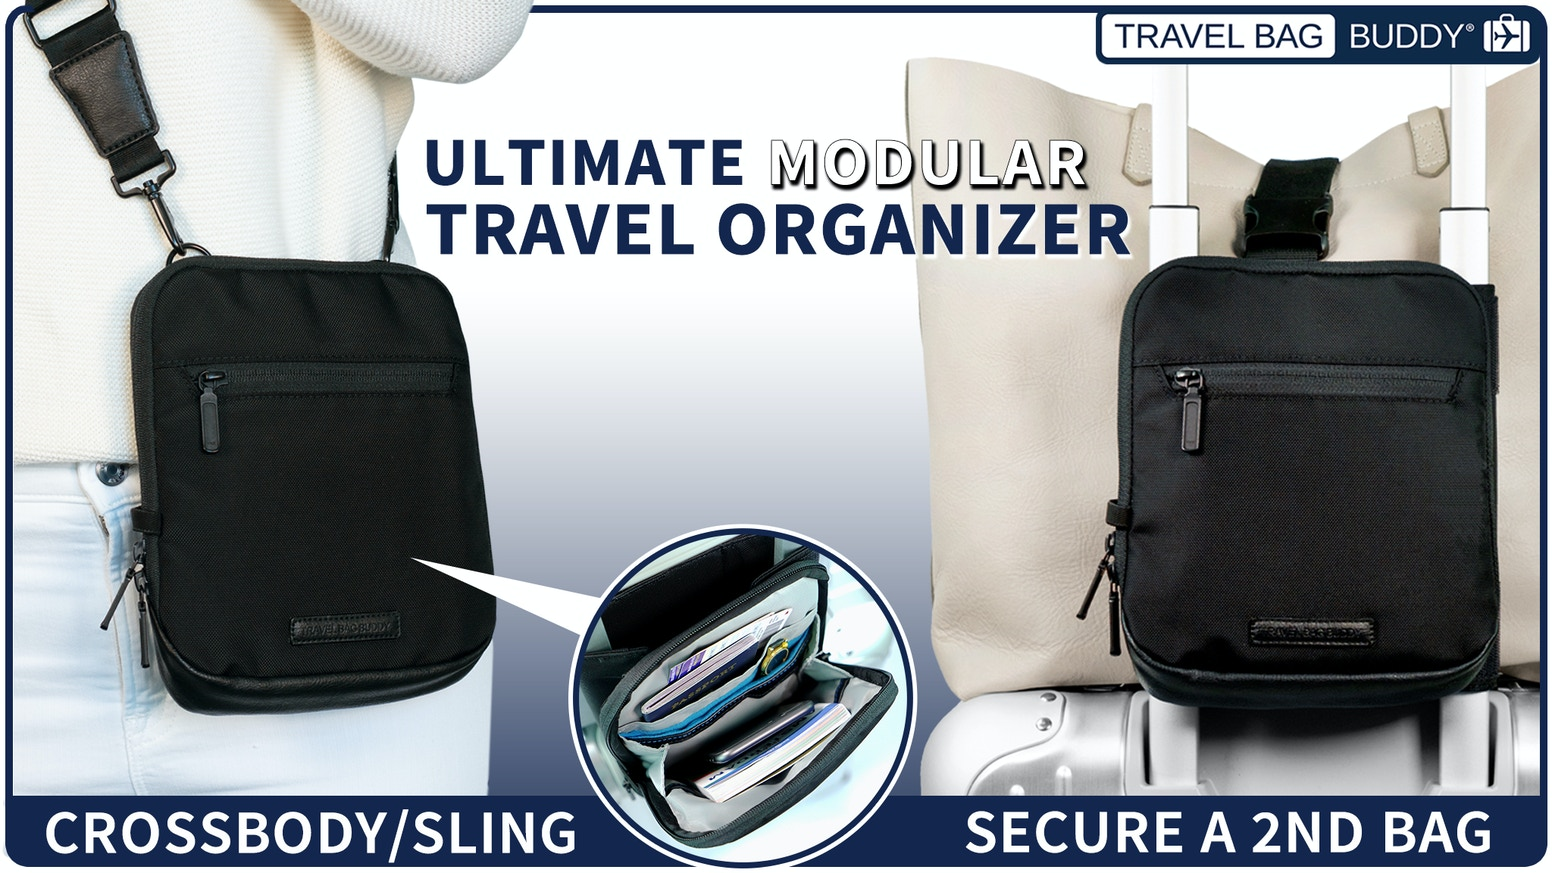 Easily pull two bags, speed through airport security & keep your items accessible on the go.